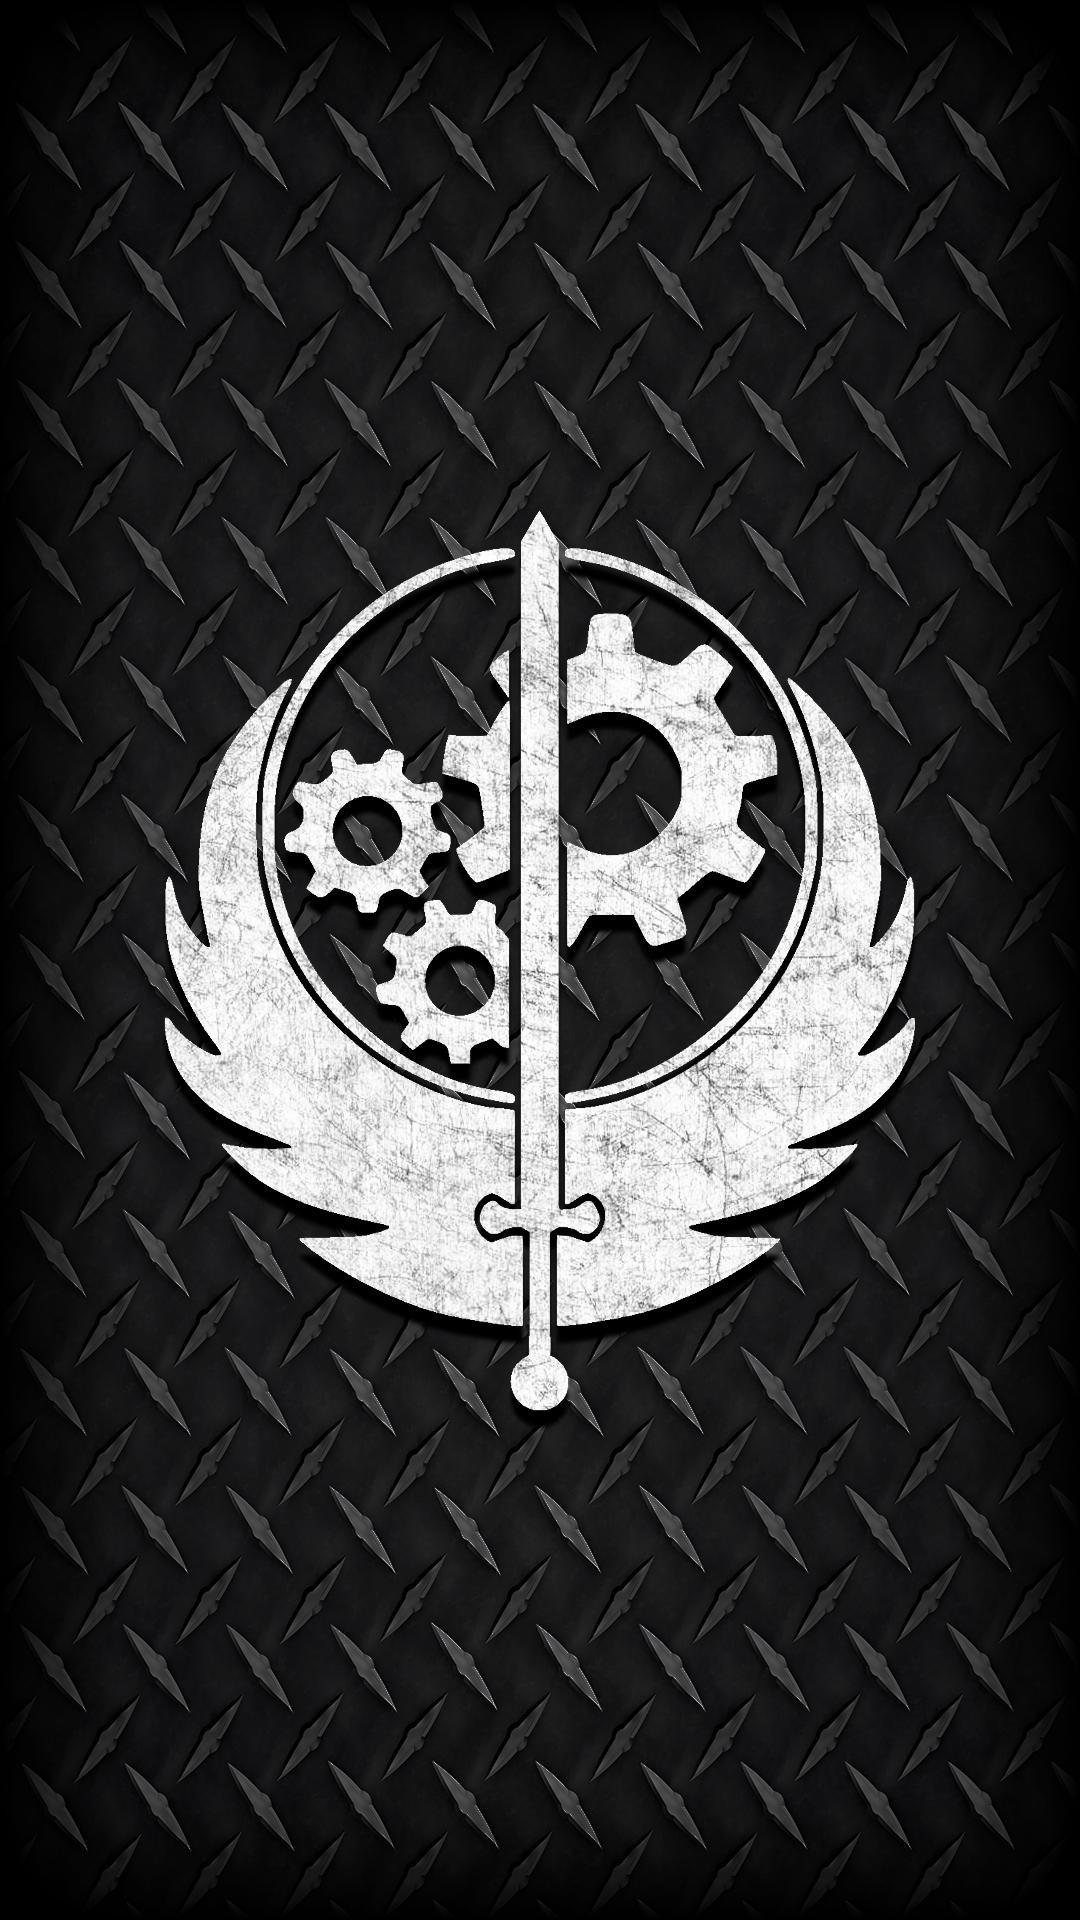 … Inverted Institute Wallpaper Credit to TheLync